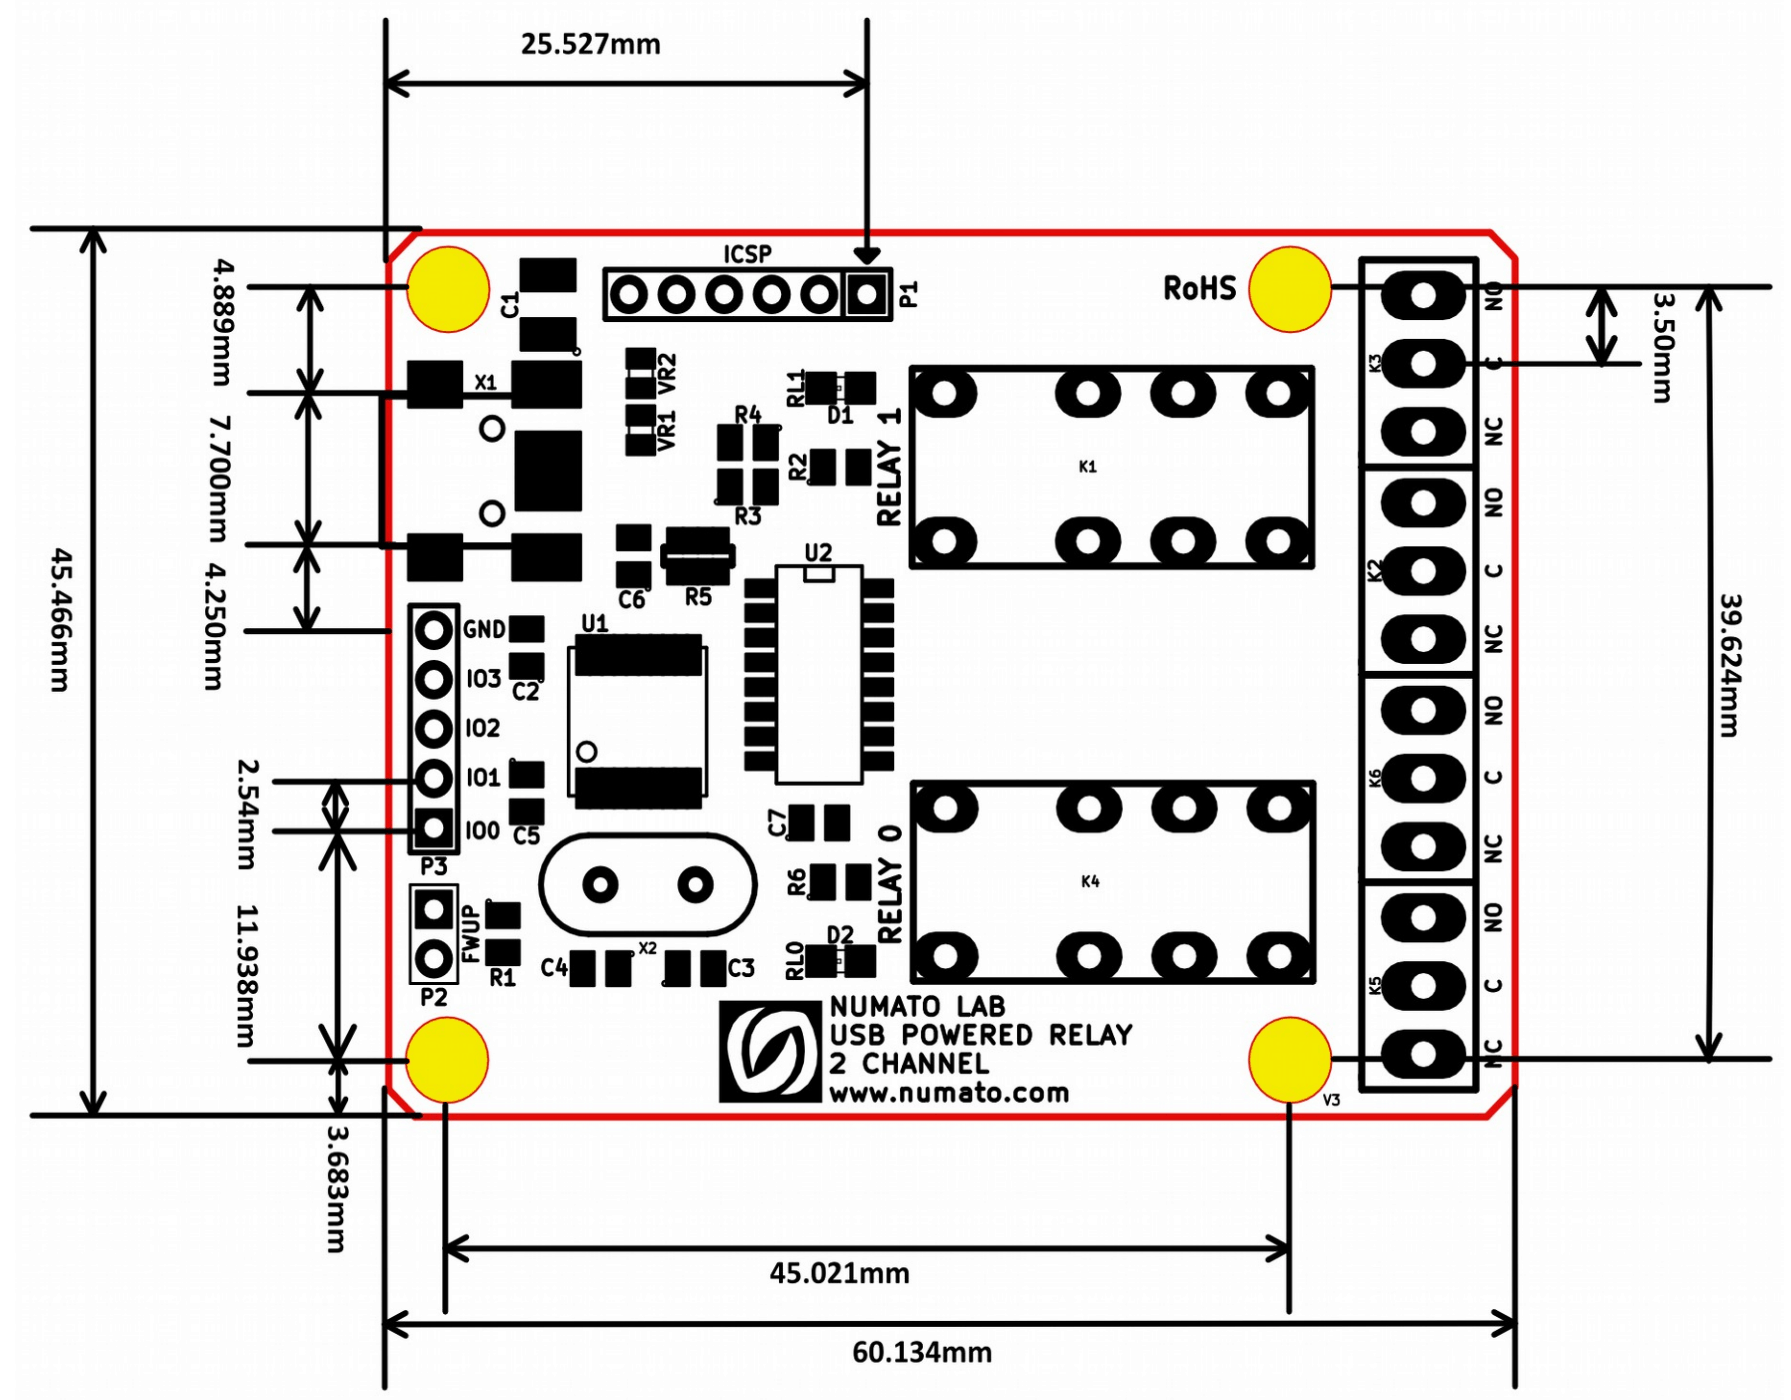 2 Channel Usb Powered Relay Module Numato Lab Help Center Usbpowered Pic Programmer Circuit Diagram 8mechanical Dimensions